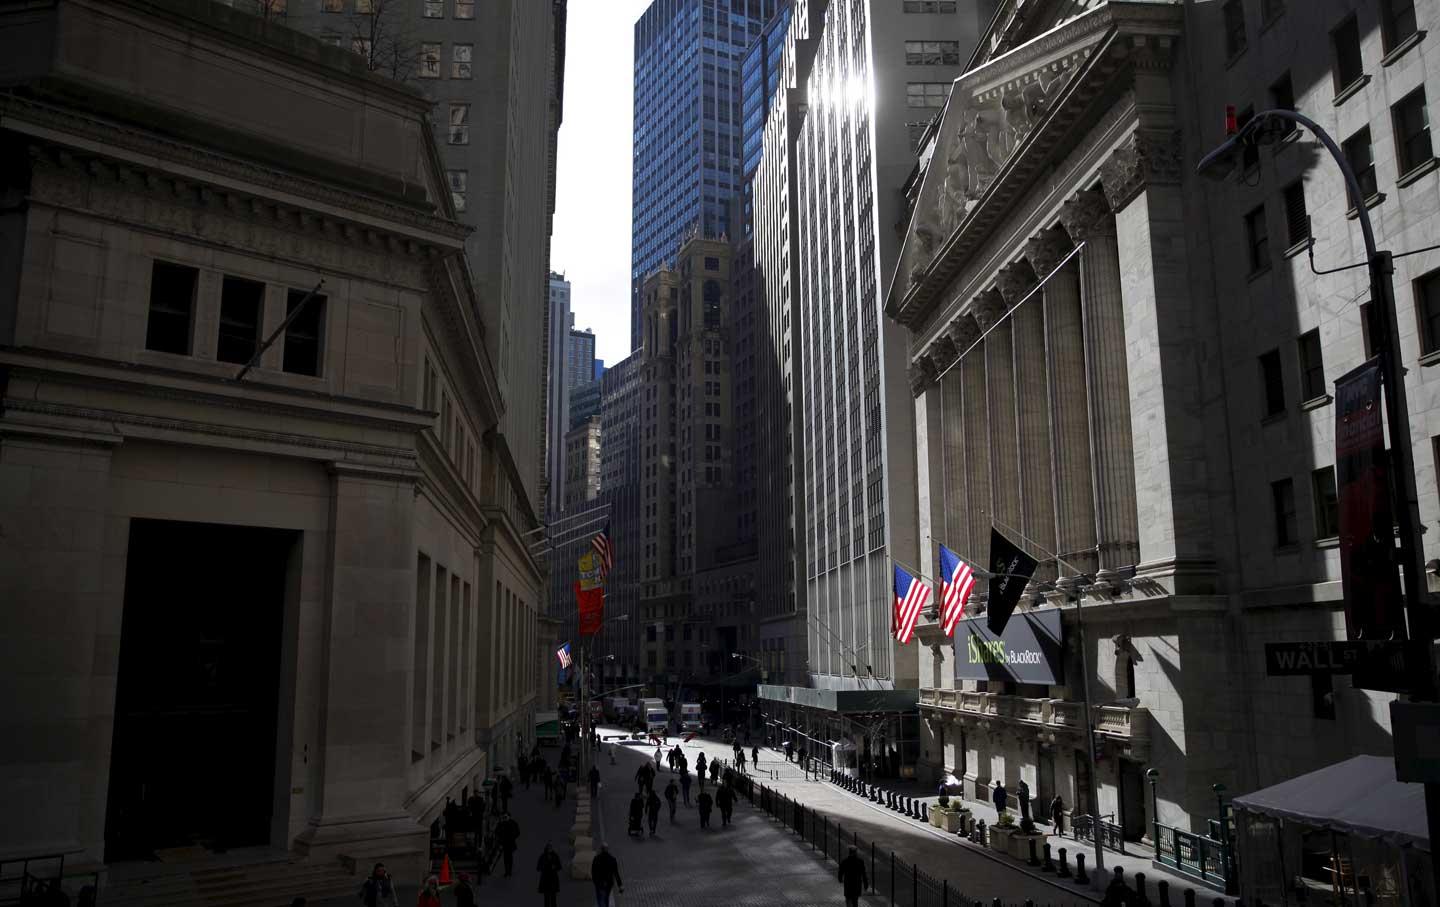 A New Coalition Aims to 'Take On Wall Street' | The Nation